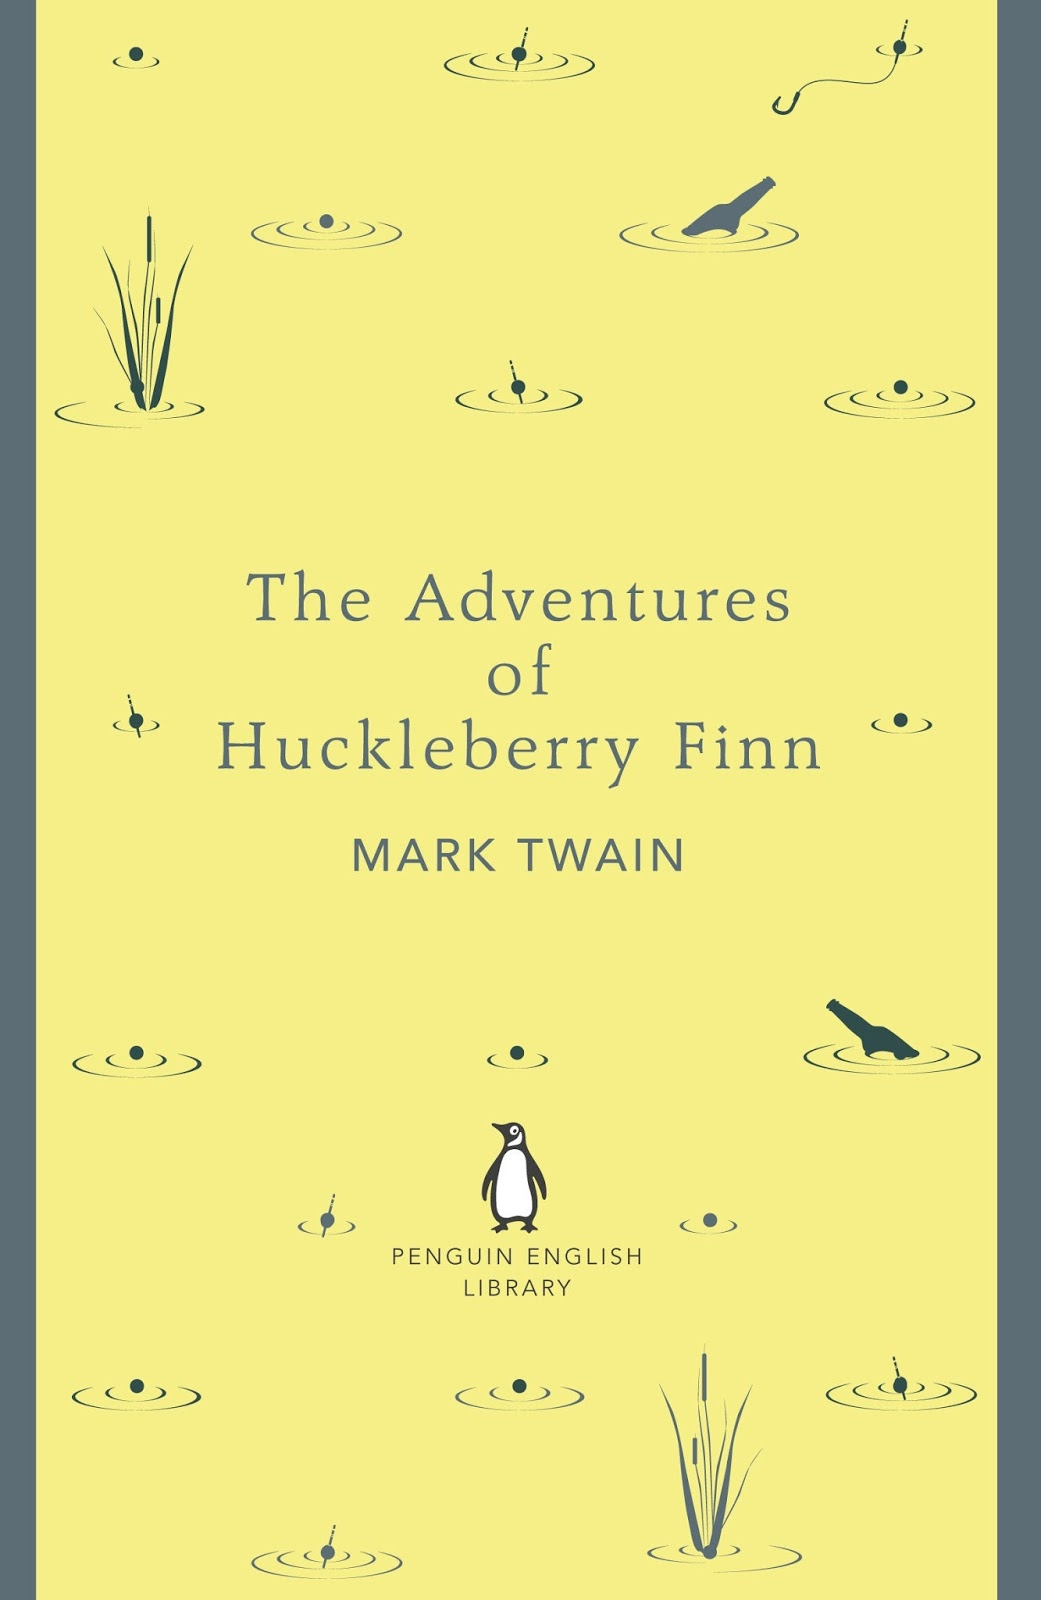 the lies in the novel thee adventures of huckleberry finn by mark twain The adventures of huckleberry finn, mark twain notice our society is evident in the novel, the adventures of huckleberry finn as you move through this novel, you will be lies/disguises/veils (3) money (4) death (5) social conscience (6.